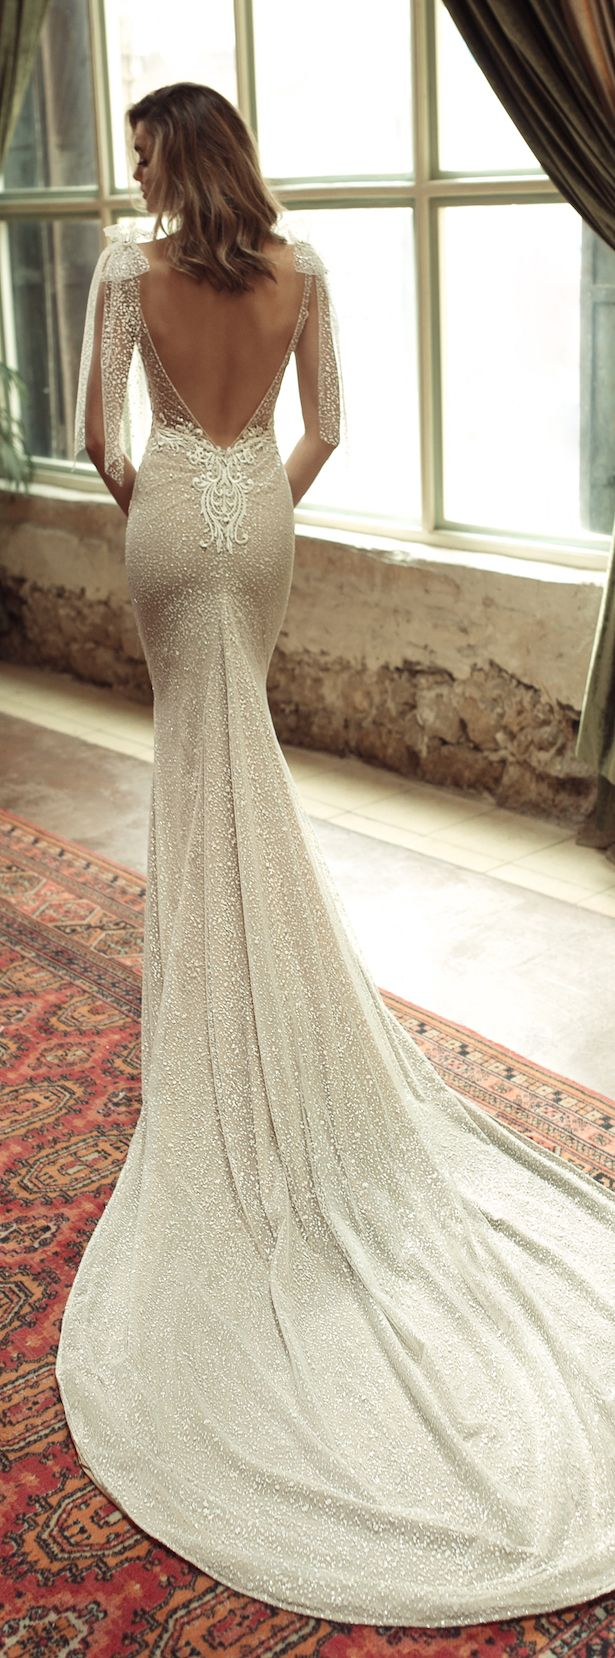 Wedding Dress by Julie Vino 2017 Romanzo Collection | Fitted bridal gown with deep back